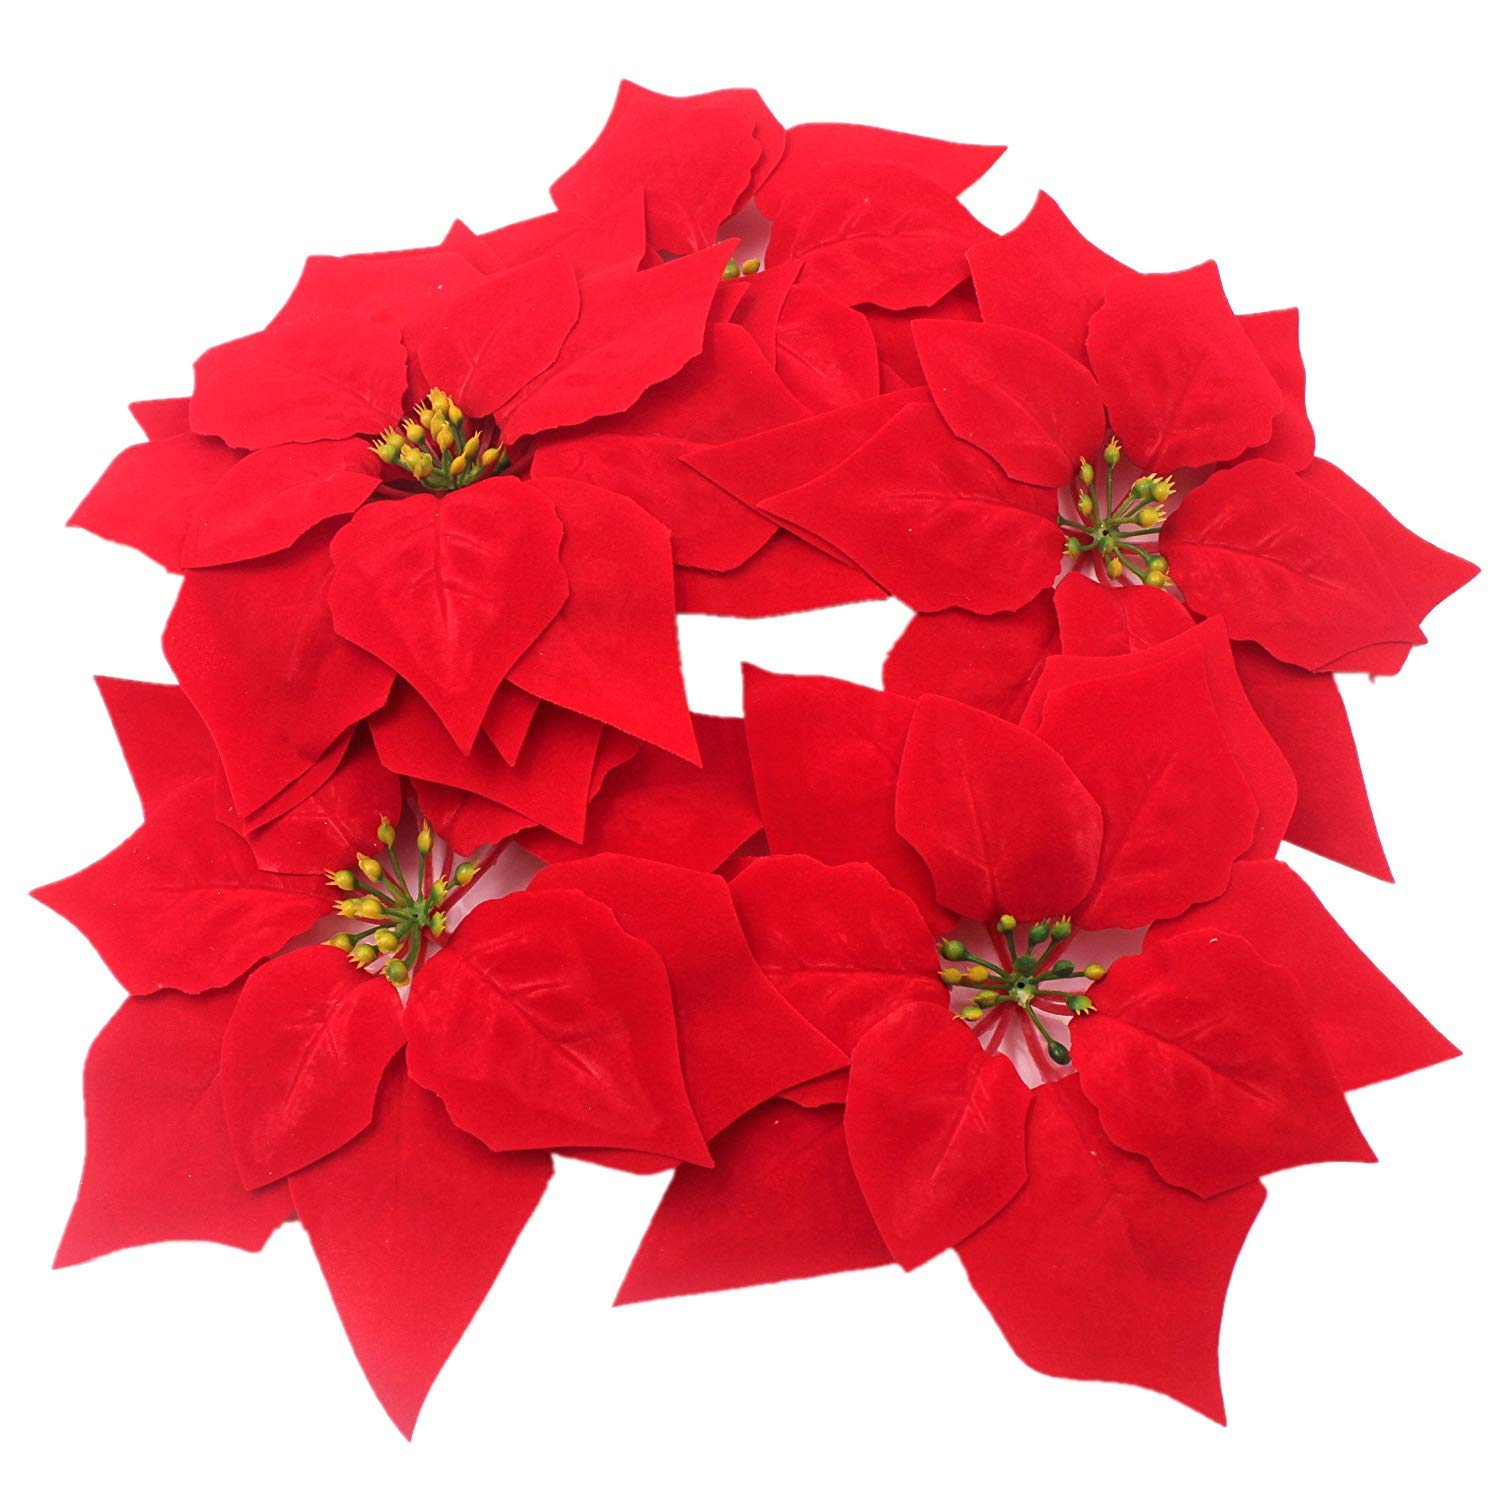 FABSELLER-Artificial-Christmas-Flowers-Red-Poinsettia-Xmas-Tree-Ornaments-8-Inch-Silk-Floral-Festival-Decor-30pcs